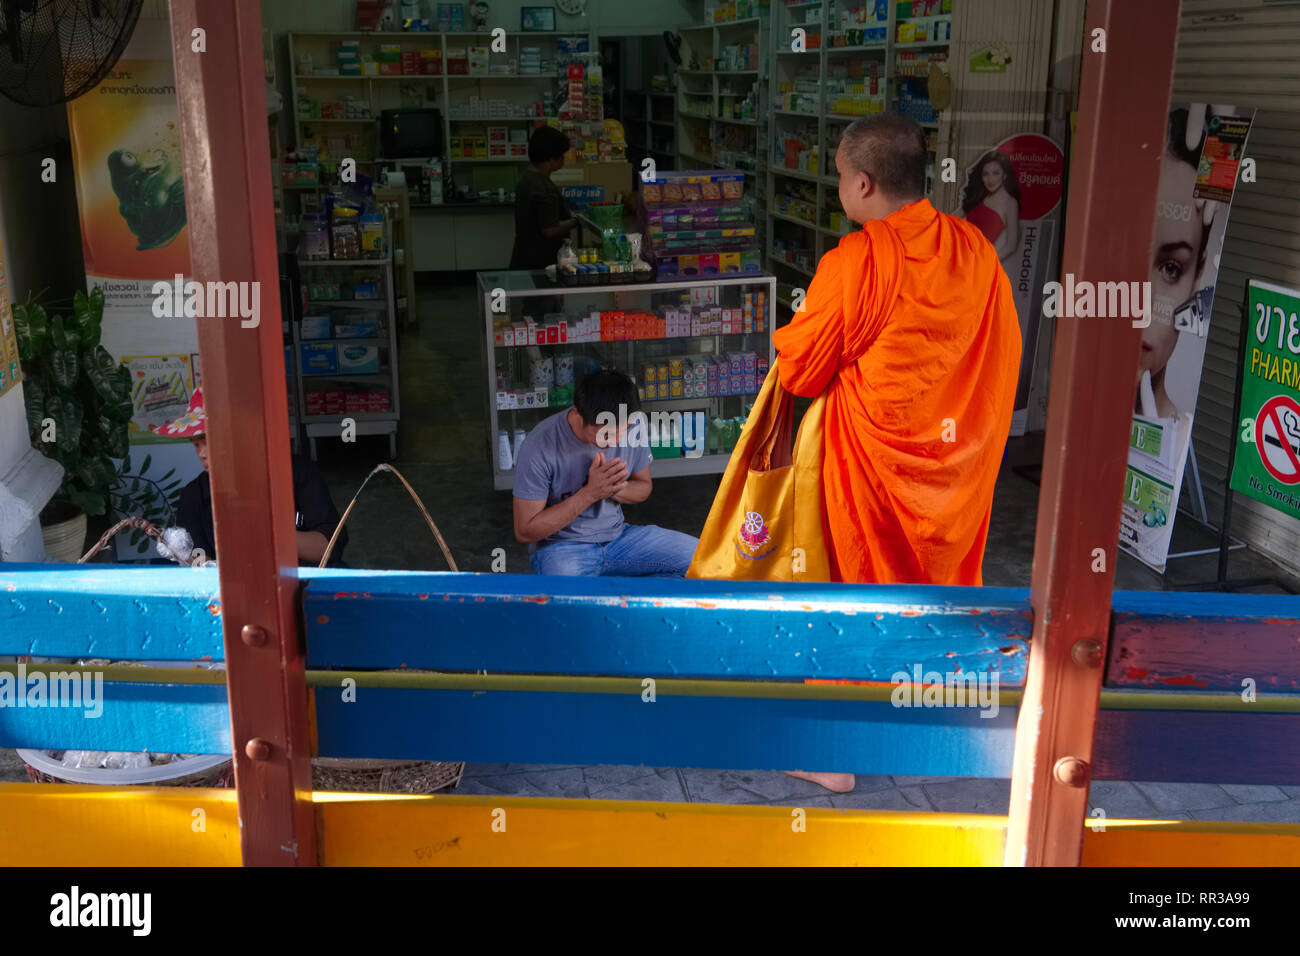 A worshipper kneels in front of a Buddhist monk in Phuket Town, Phuket, Thailand, seen from inside a songthaew, a traditional, basic kind of local bus - Stock Image